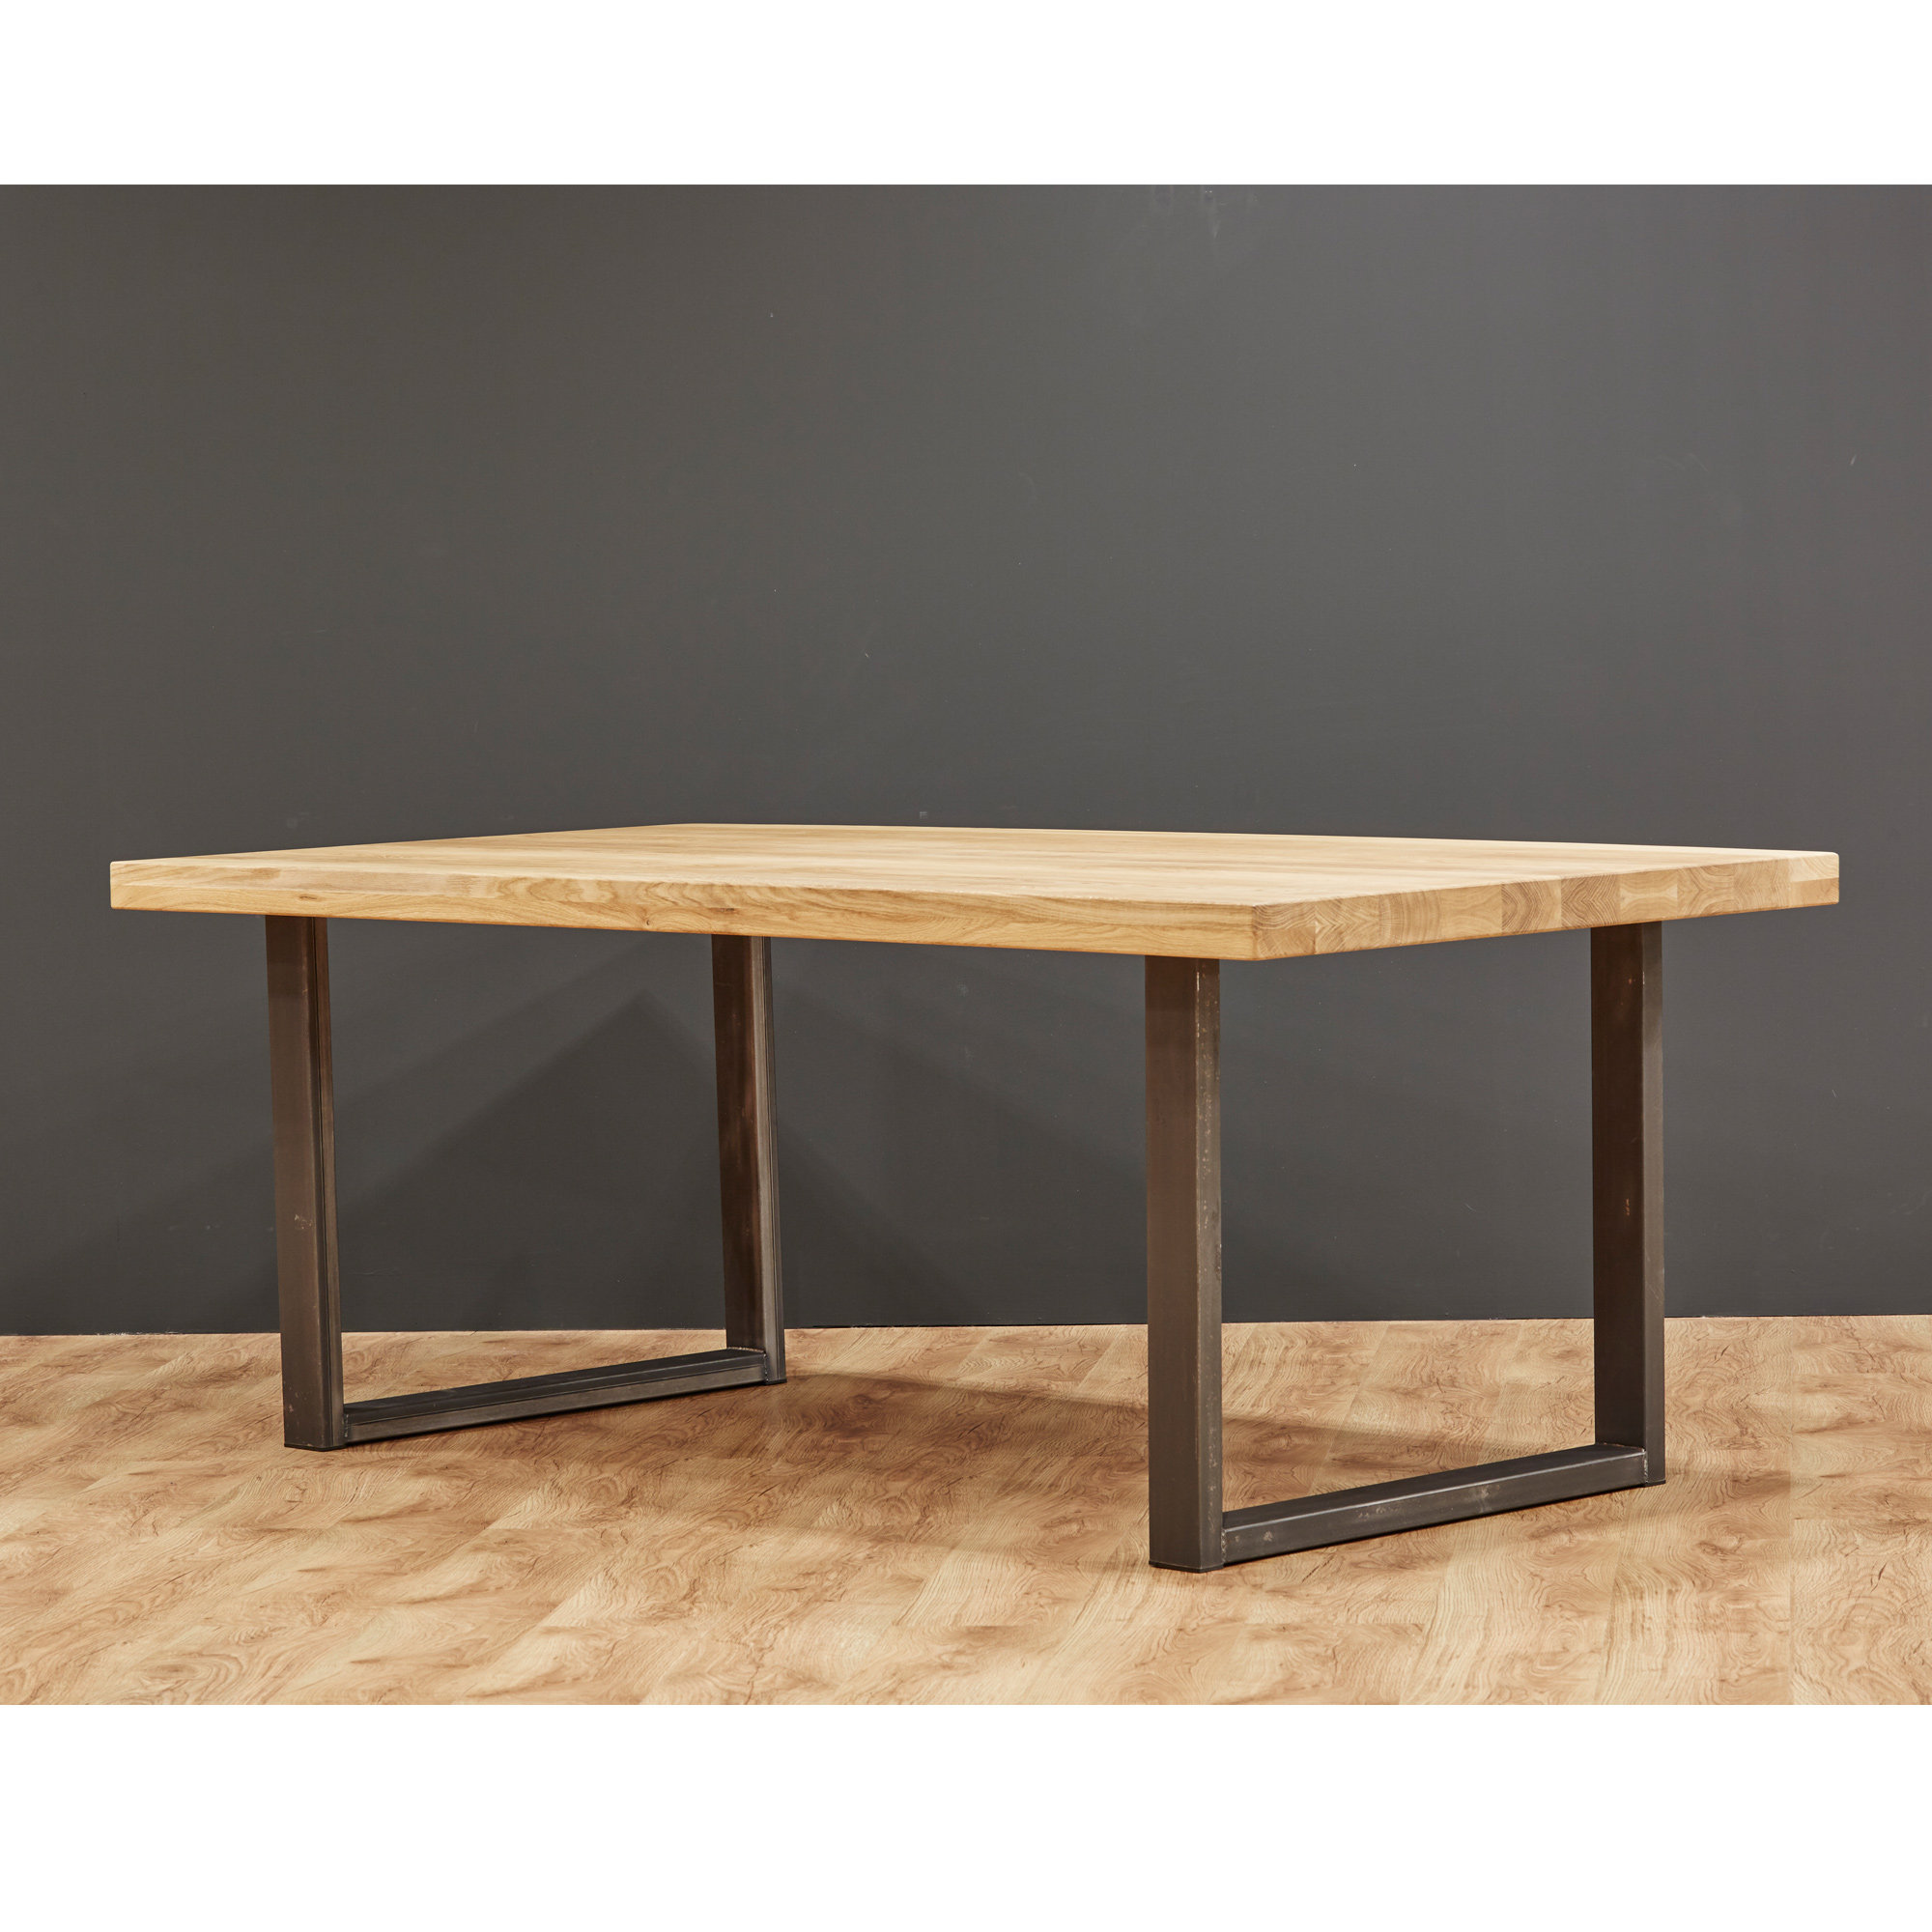 Stone dining table no 44 furniture cobham nr london for Stone dining table